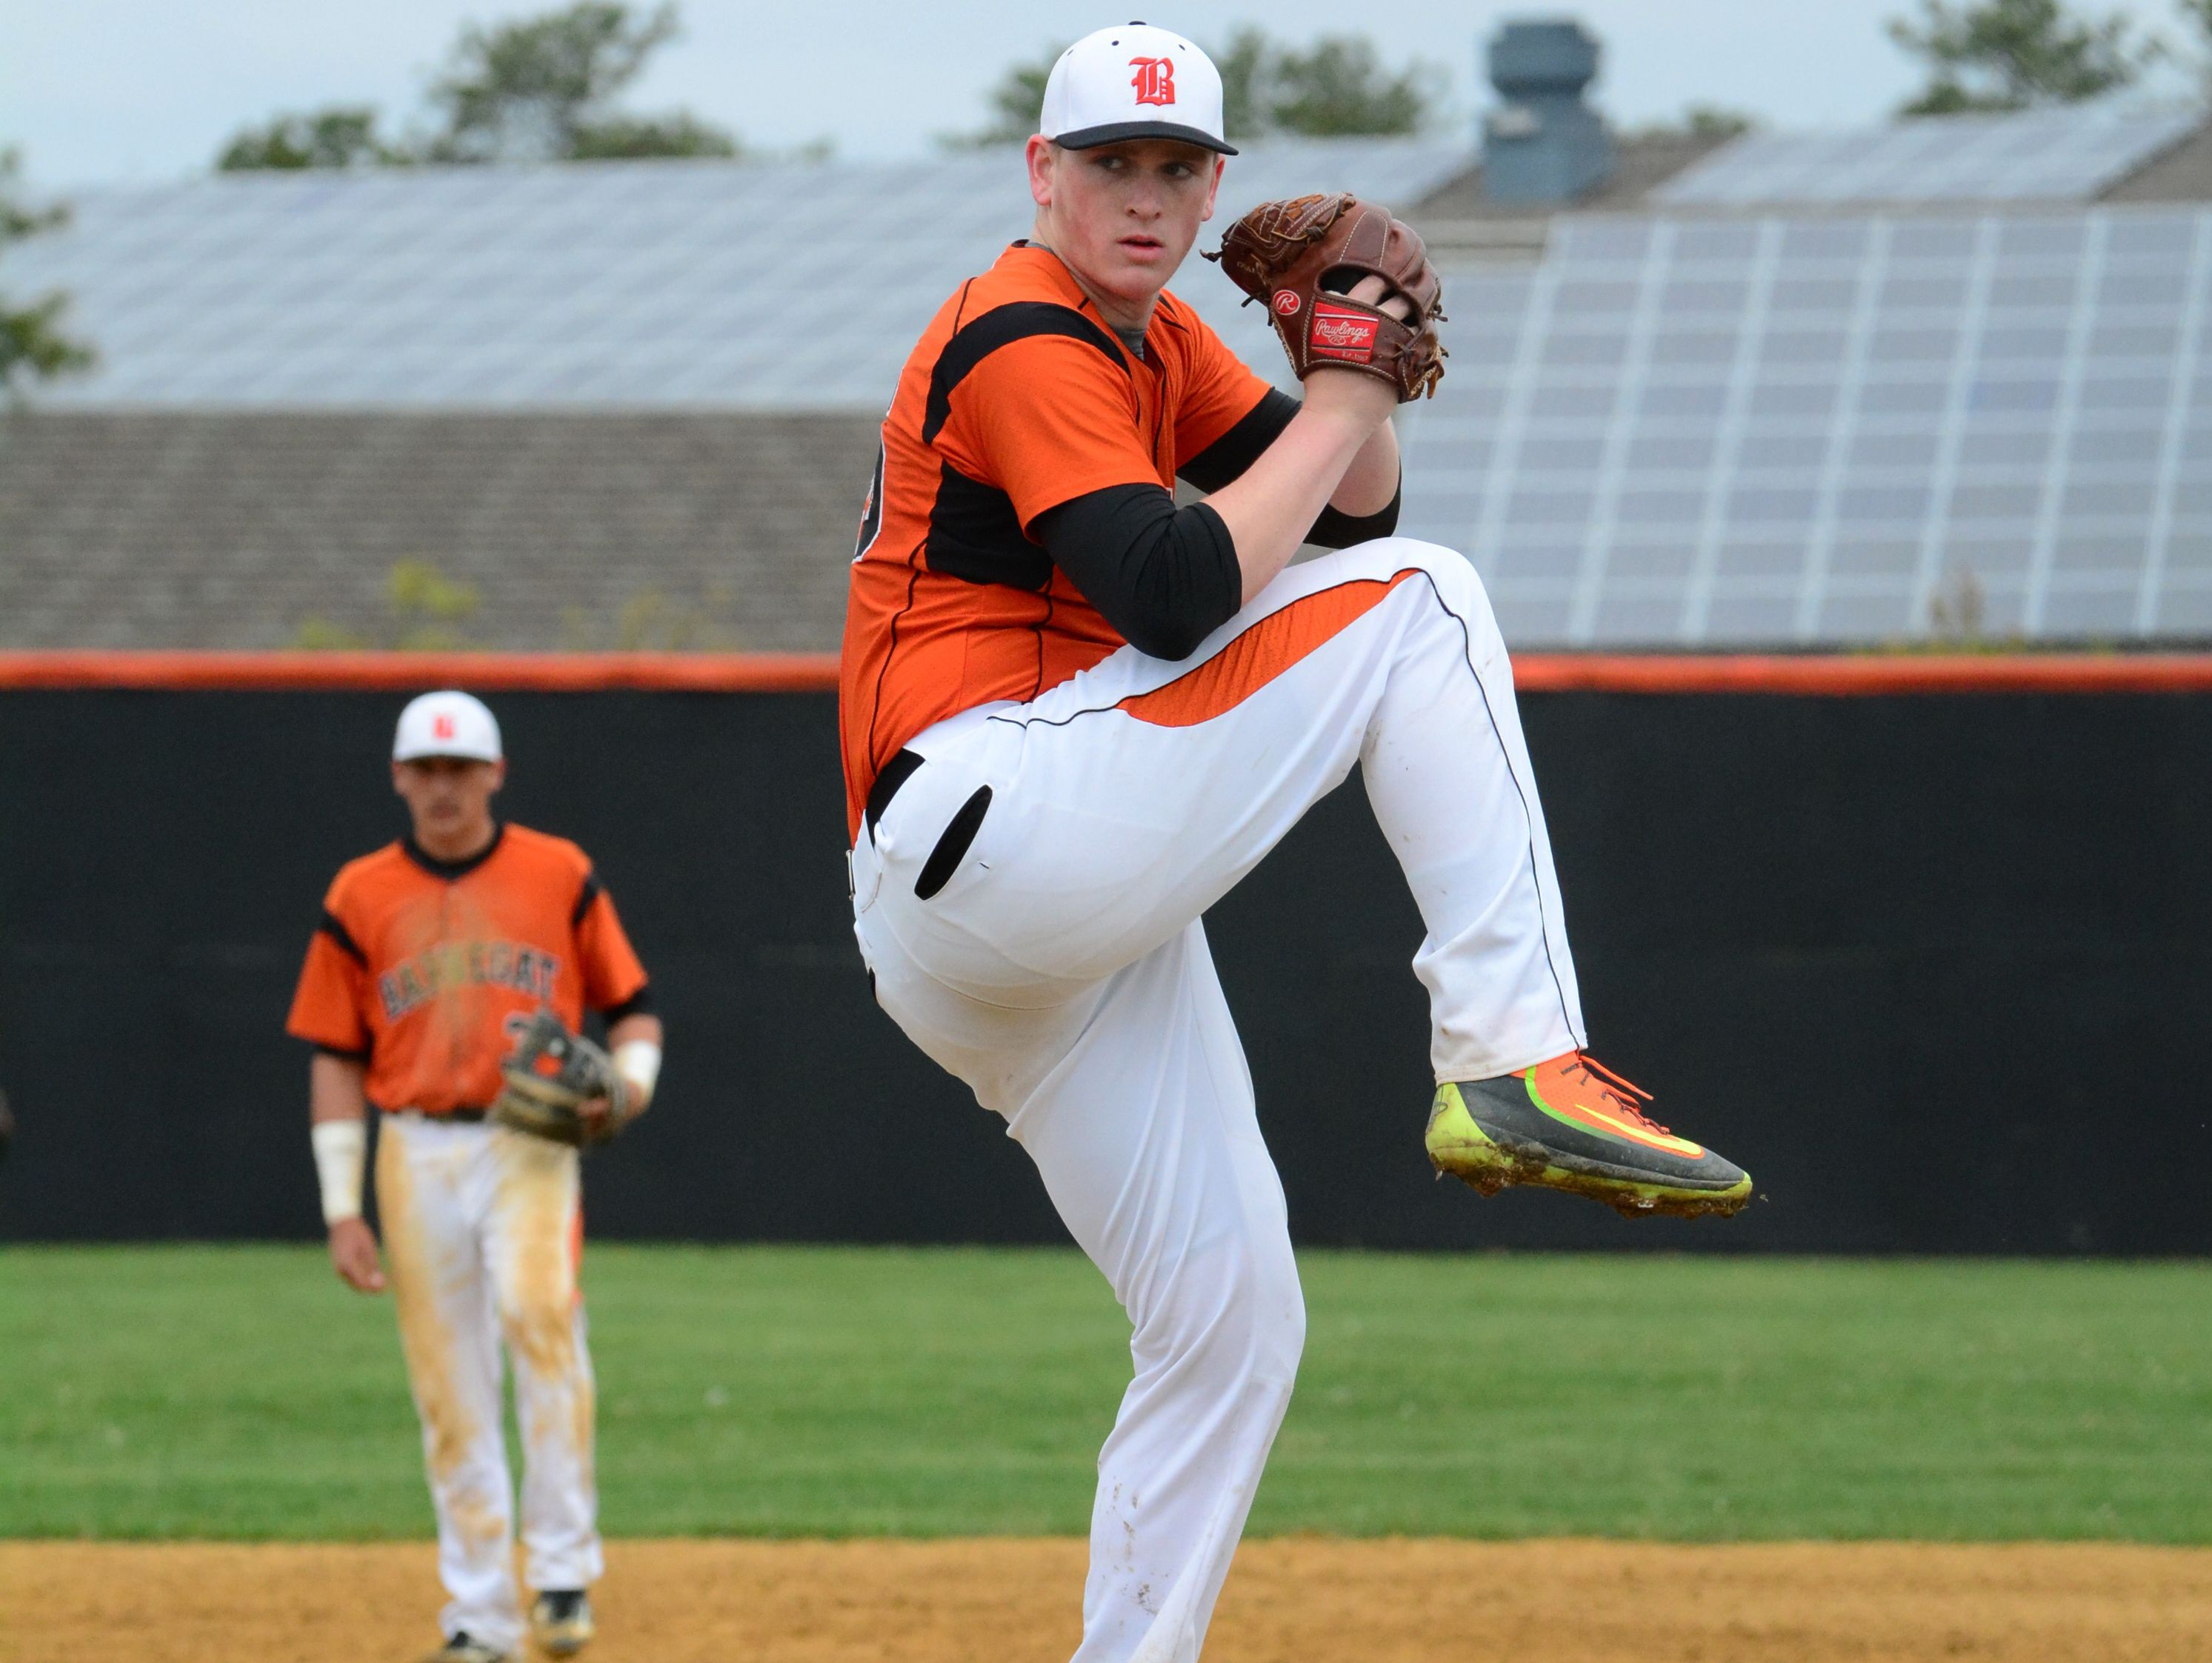 Barnegat pitcher Jason Groome throws against Pinelands in the Ocean County Baseball Tournament on Satuday,